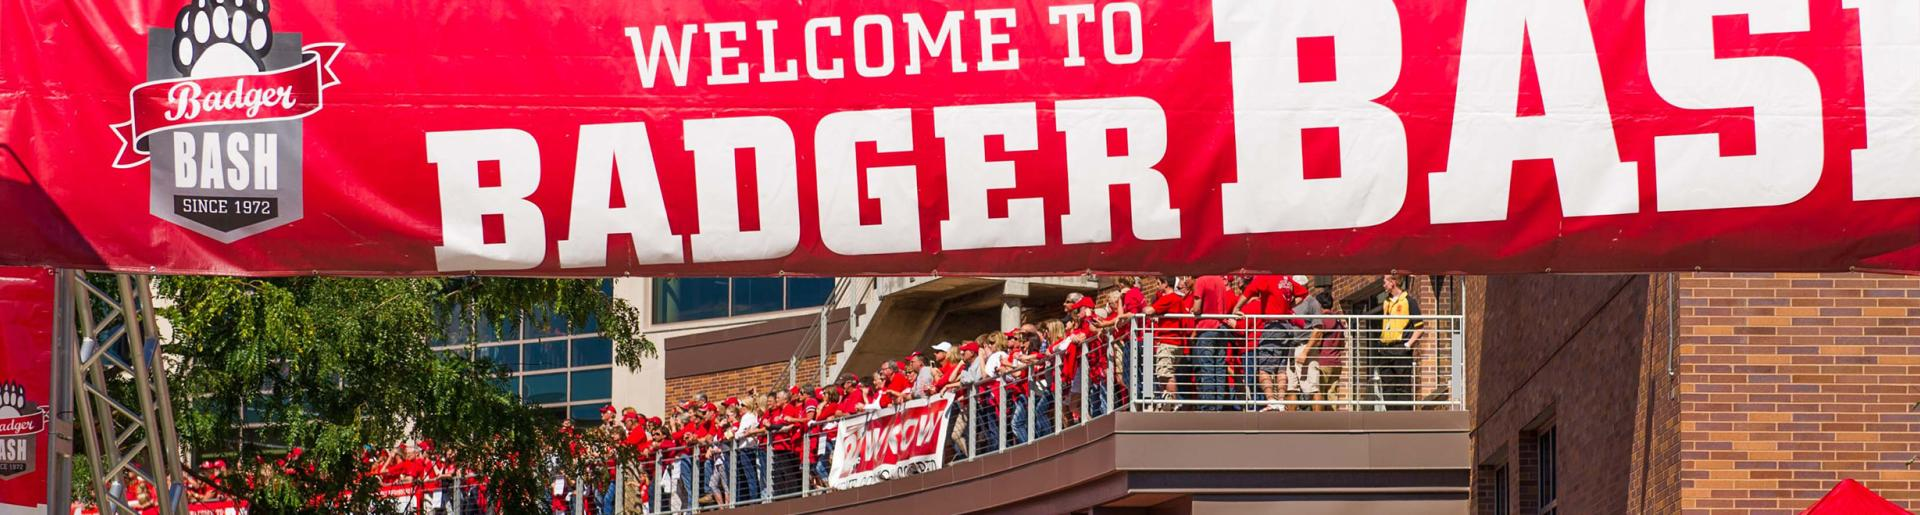 Welcome to Badger Bash